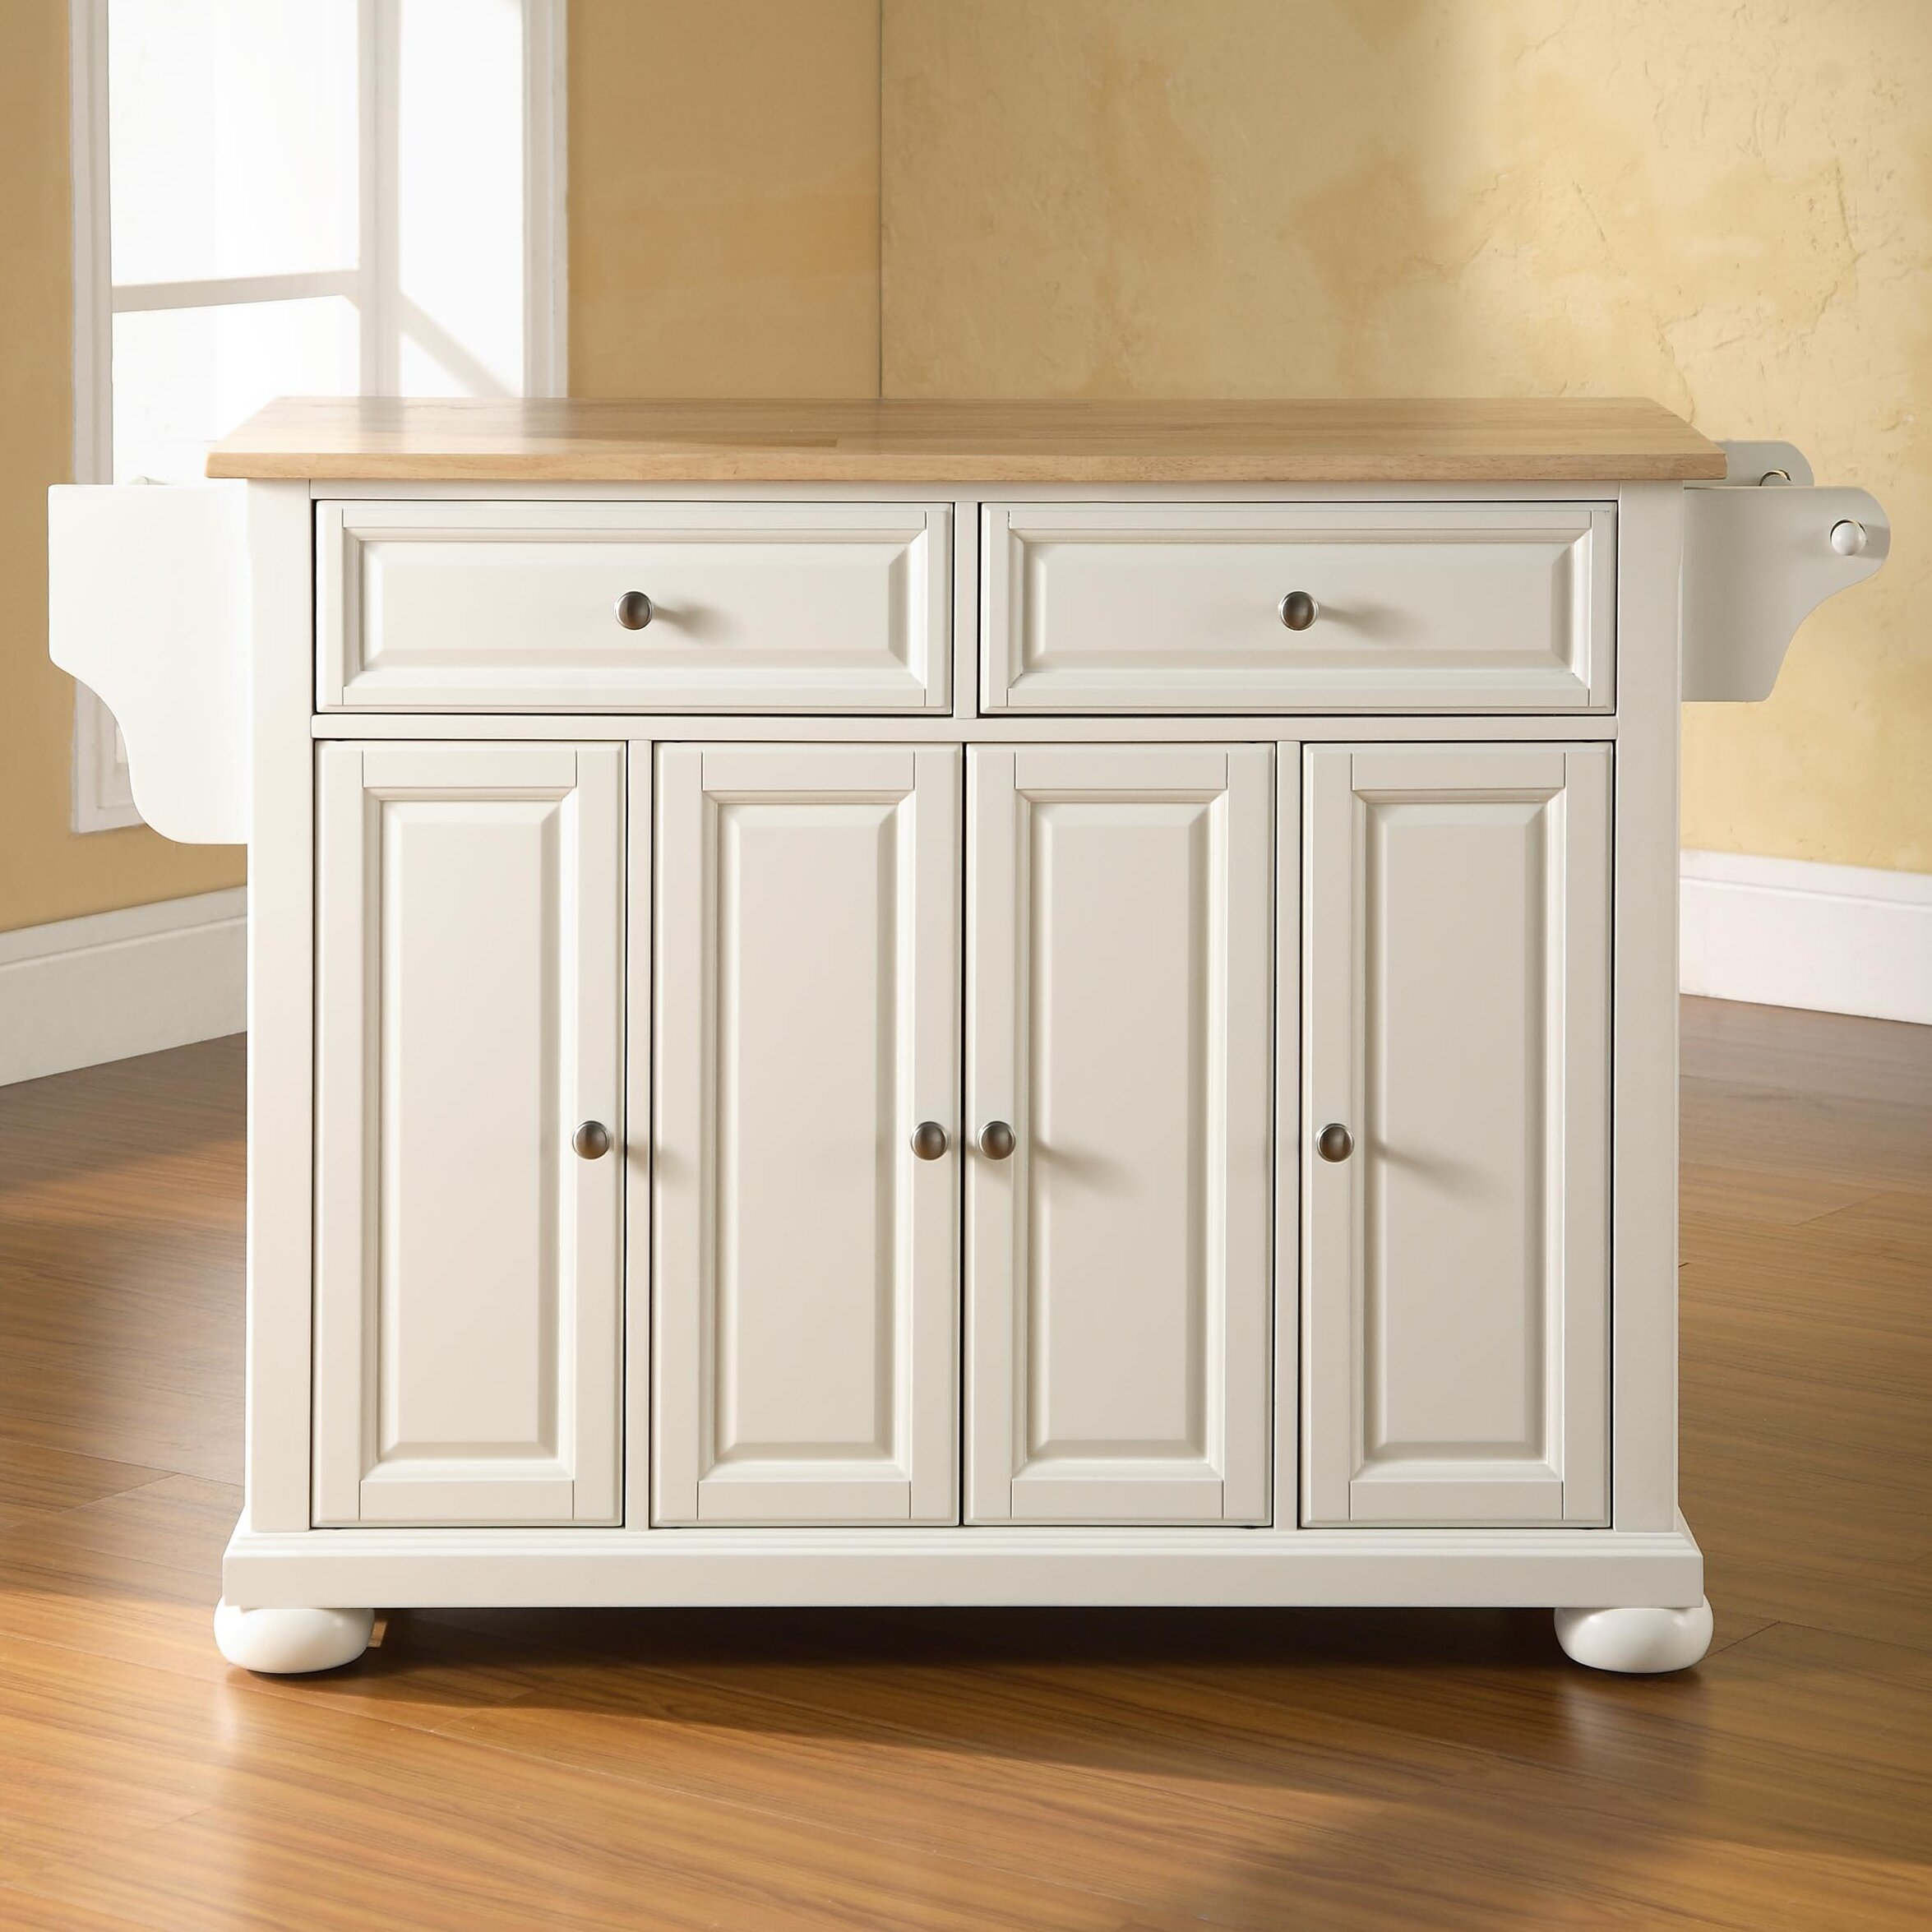 Darby Home Co Pottstown Kitchen Island With Wood Top